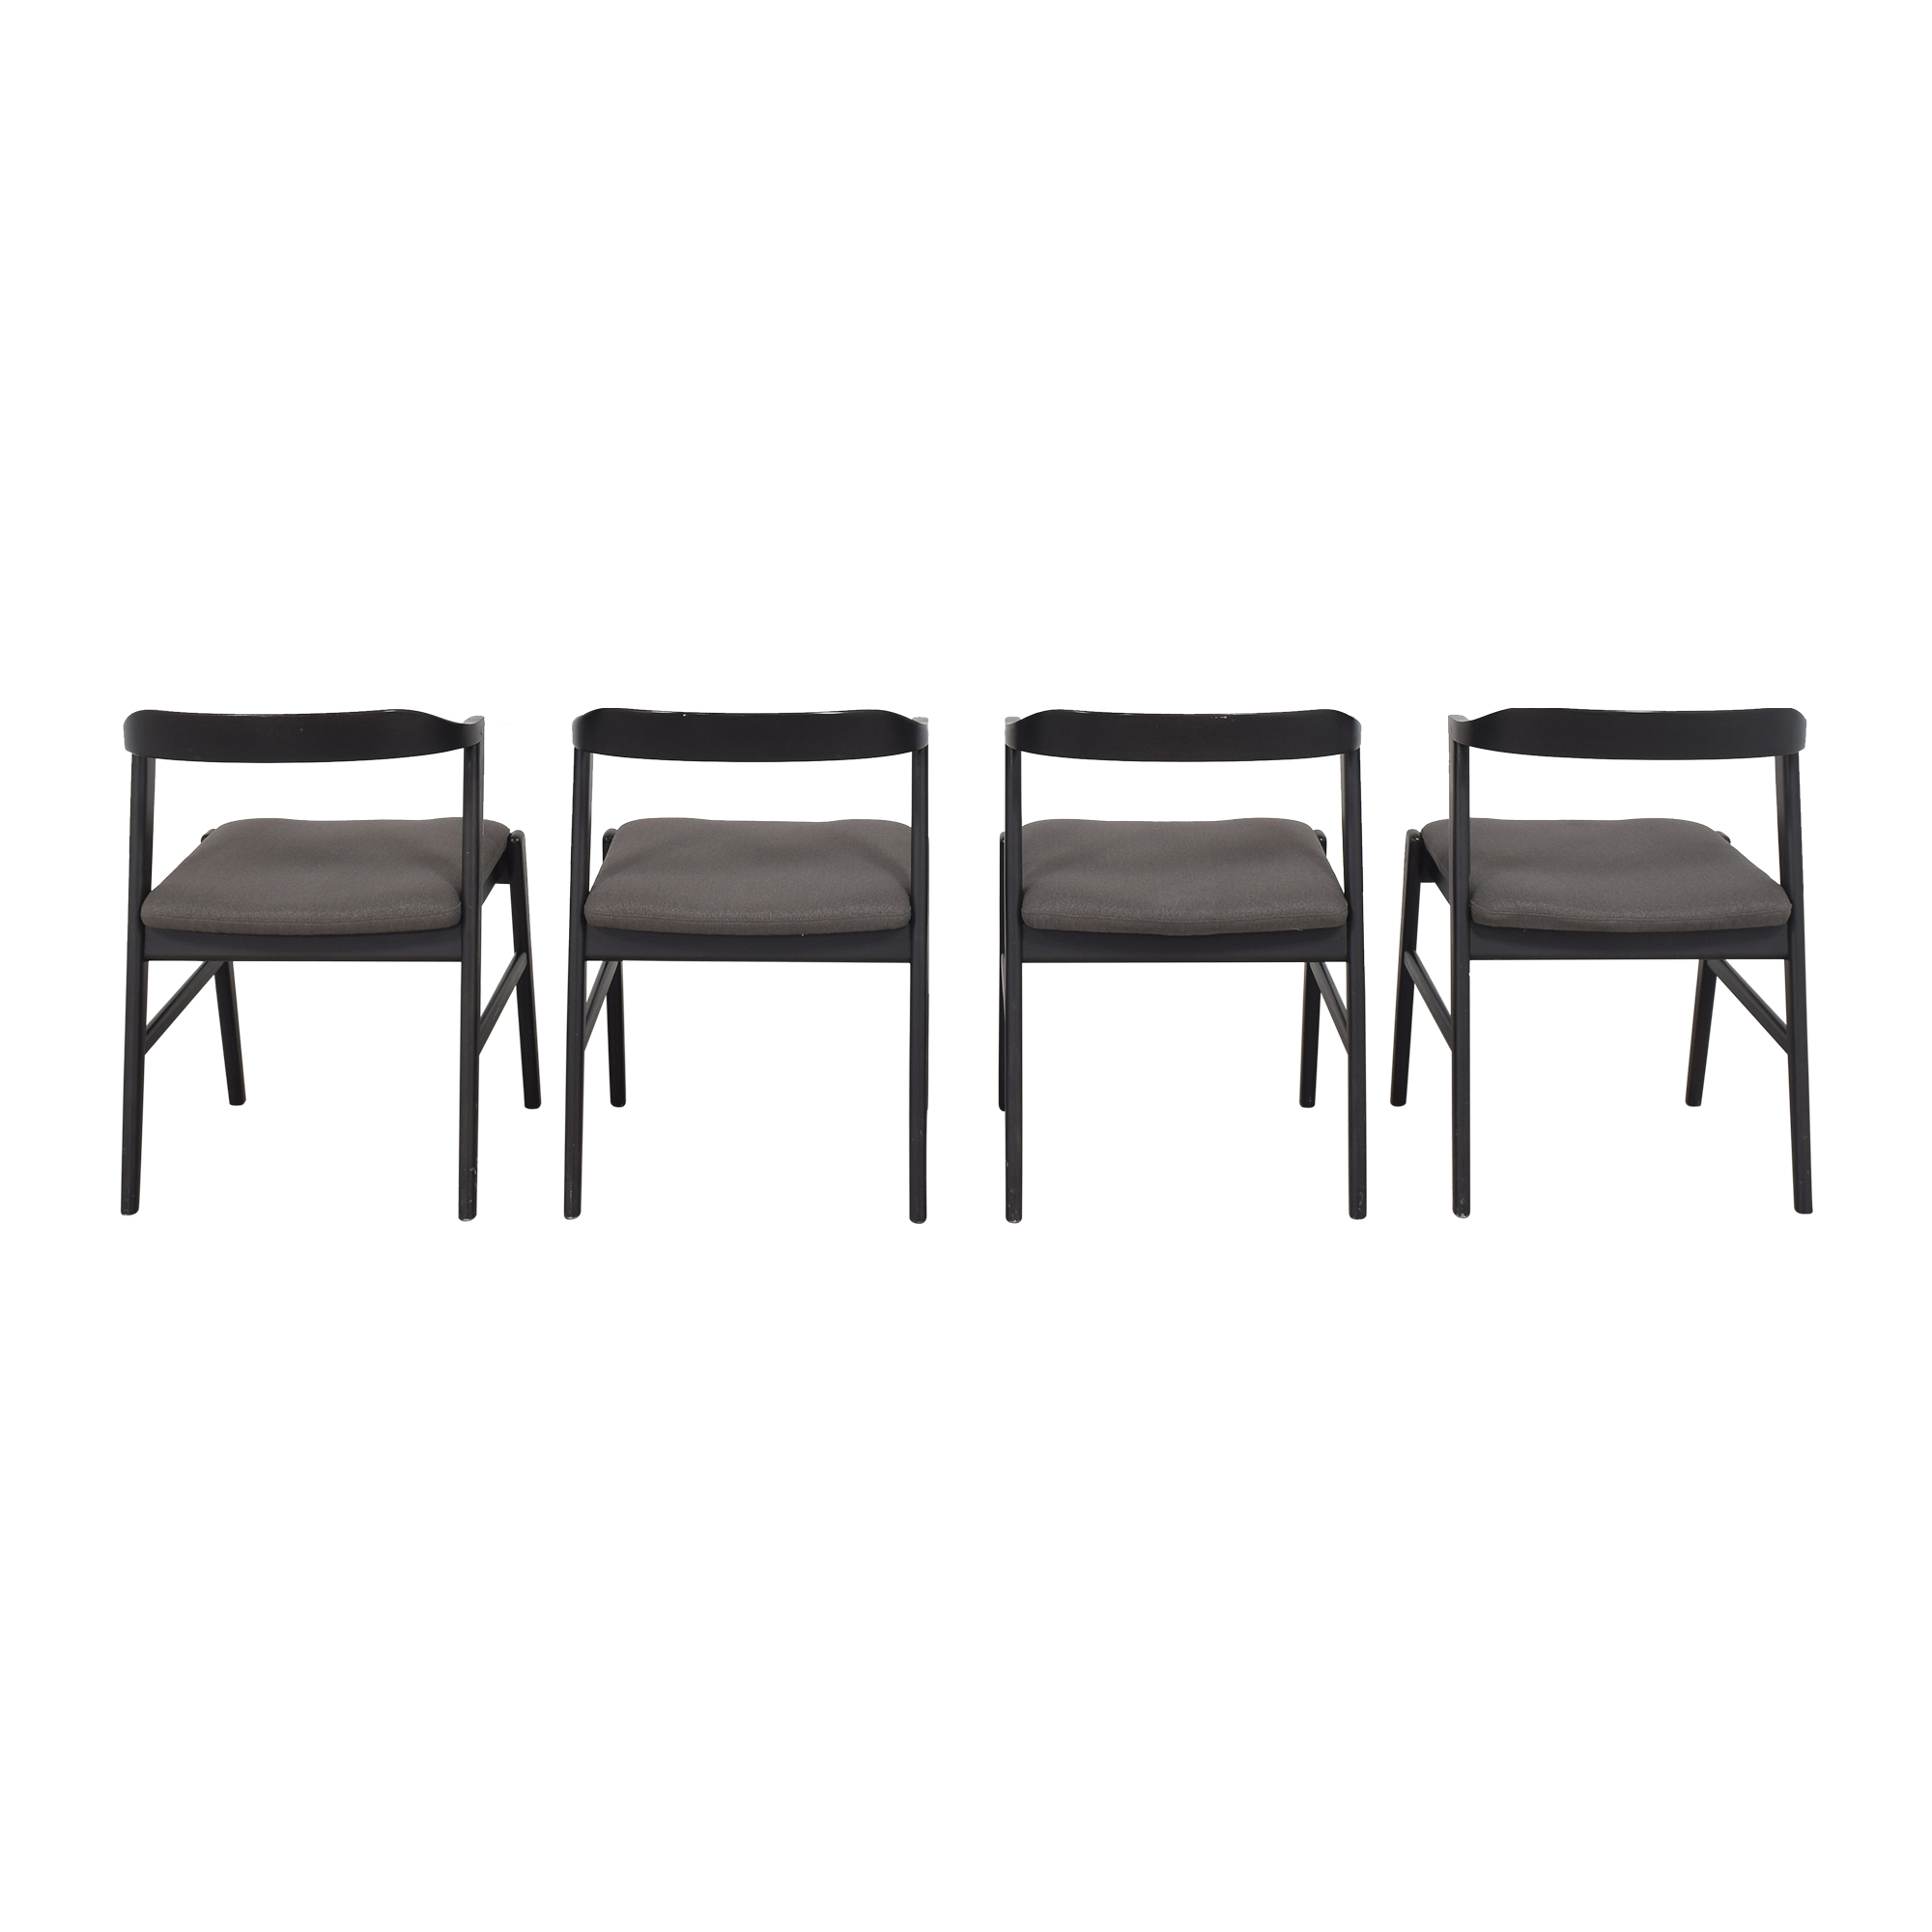 Room & Board Room & Board Jansen Dining Chairs Chairs